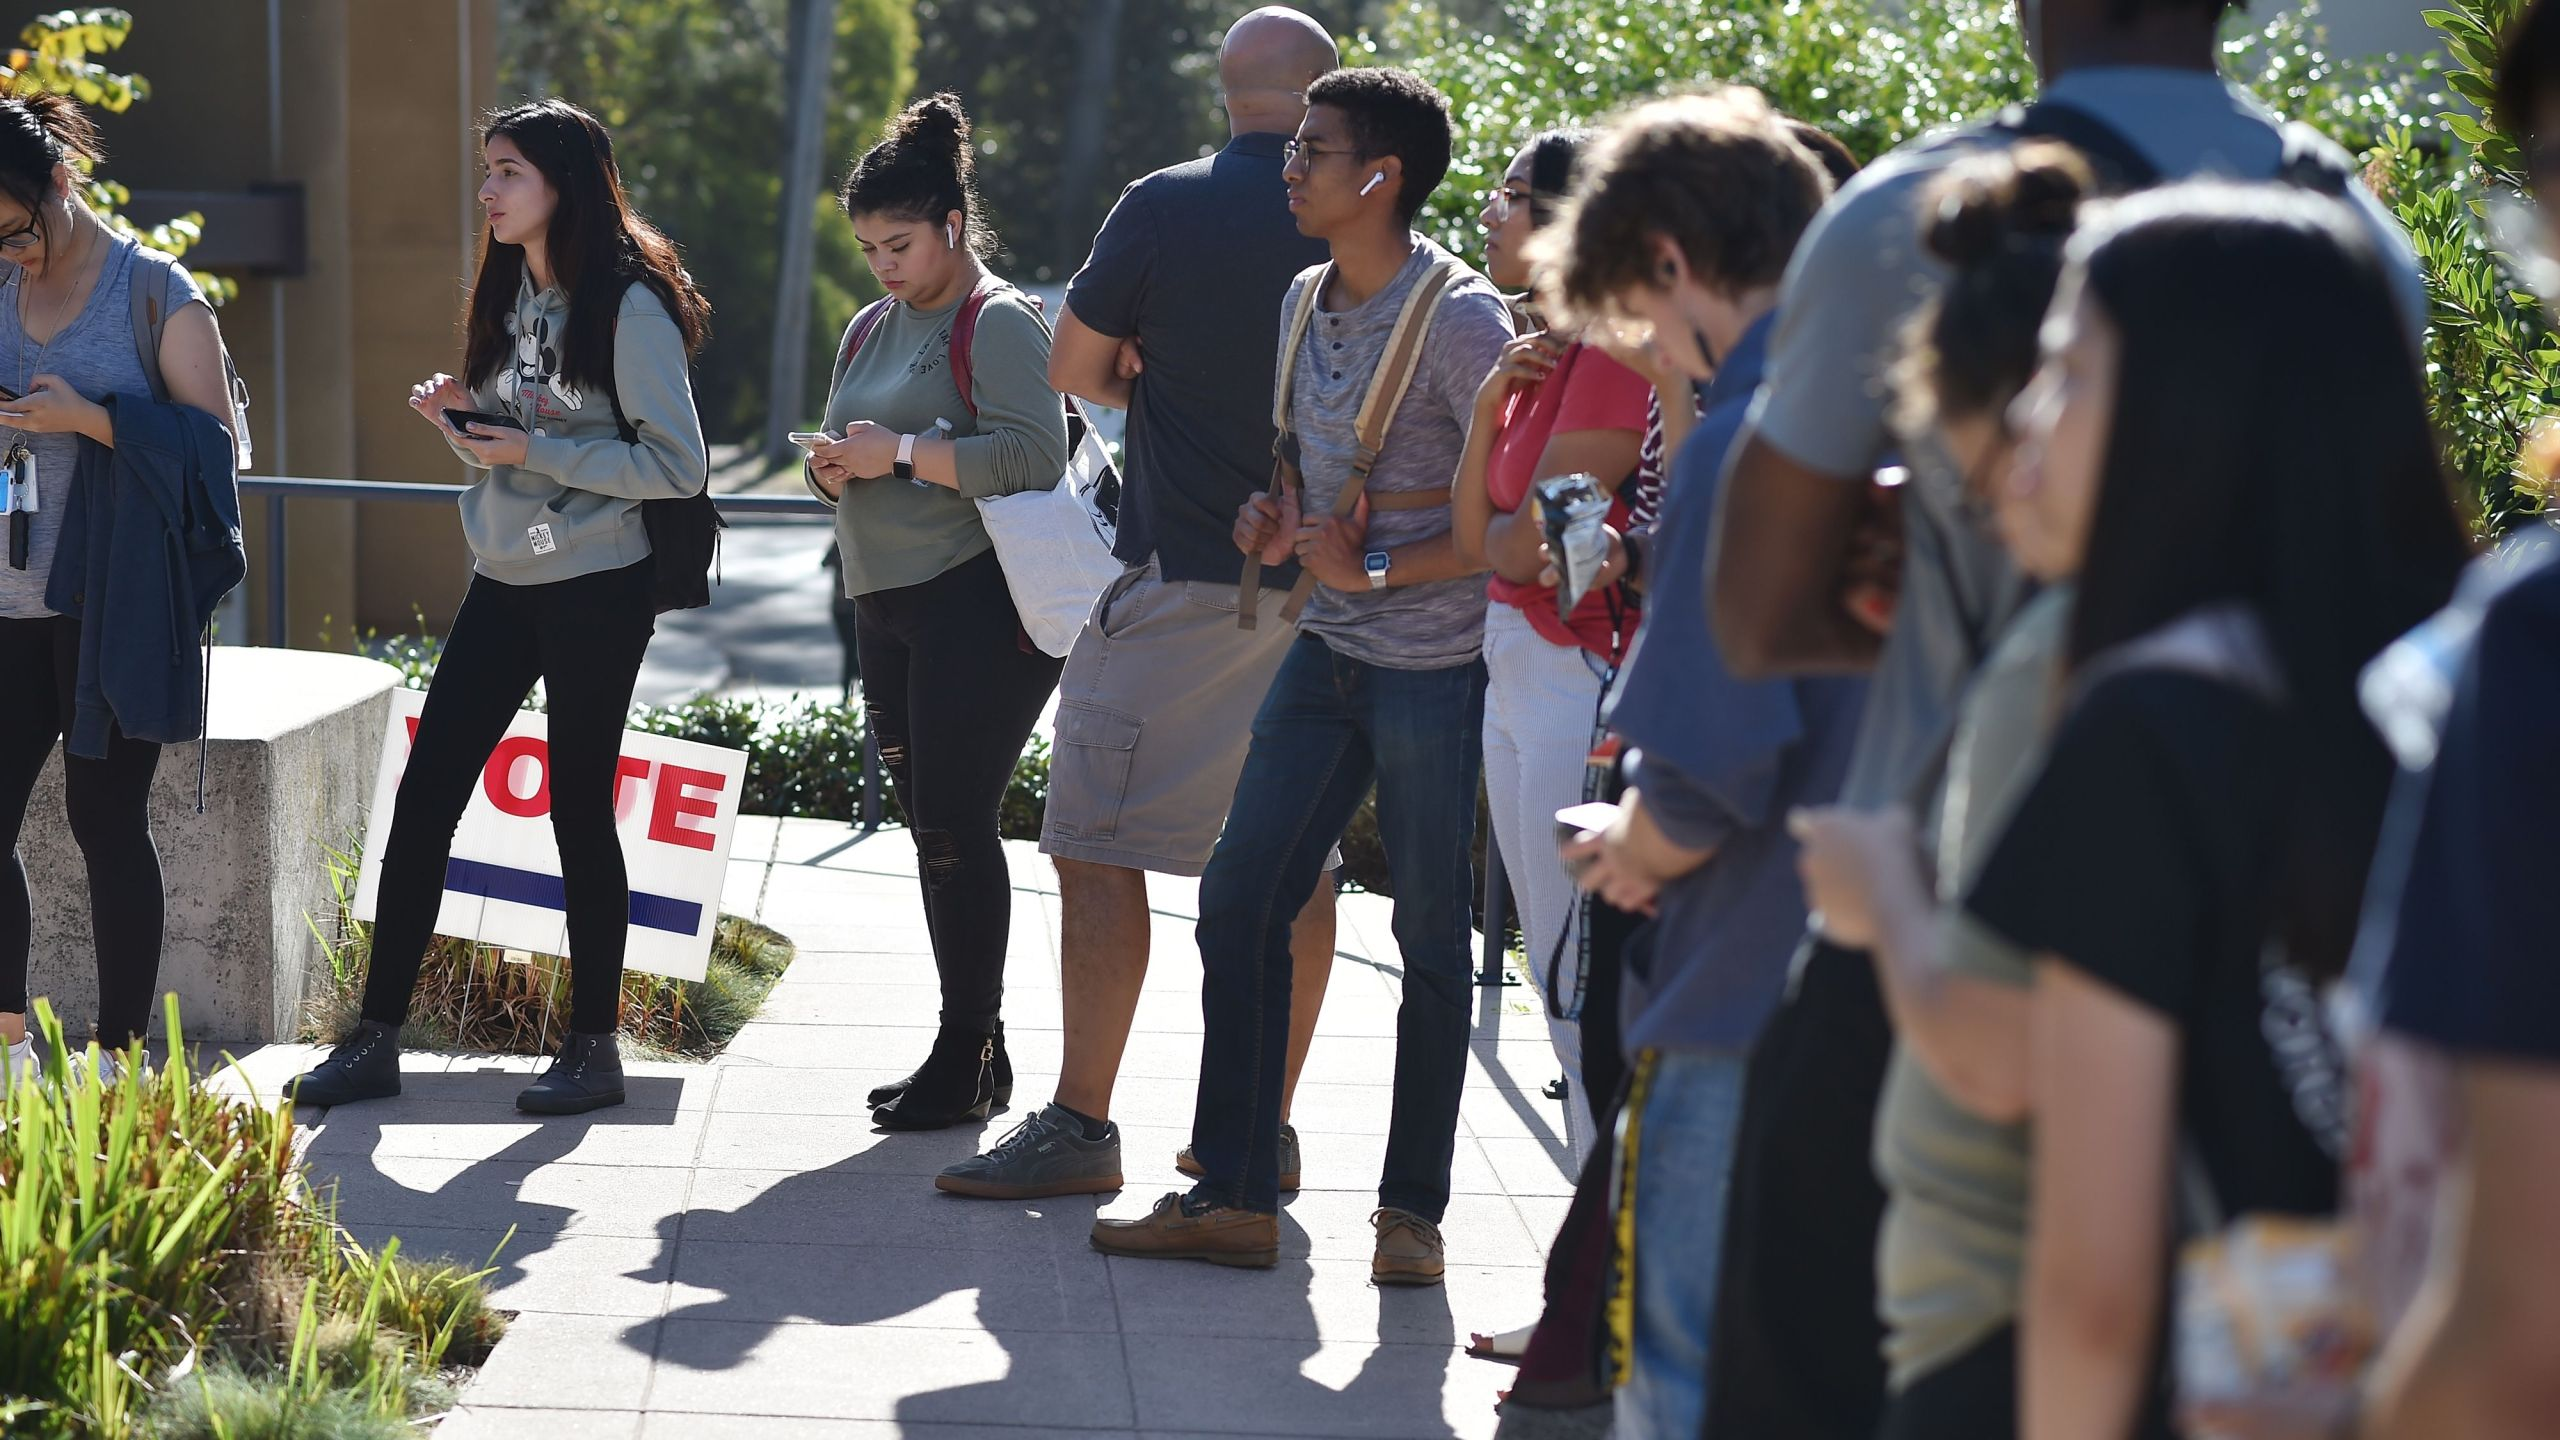 Students wait in line to cast their ballot at a polling station on the campus of UC Irvine on Nov. 6, 2018. (Credit: Robyn Beck / AFP / Getty Images)